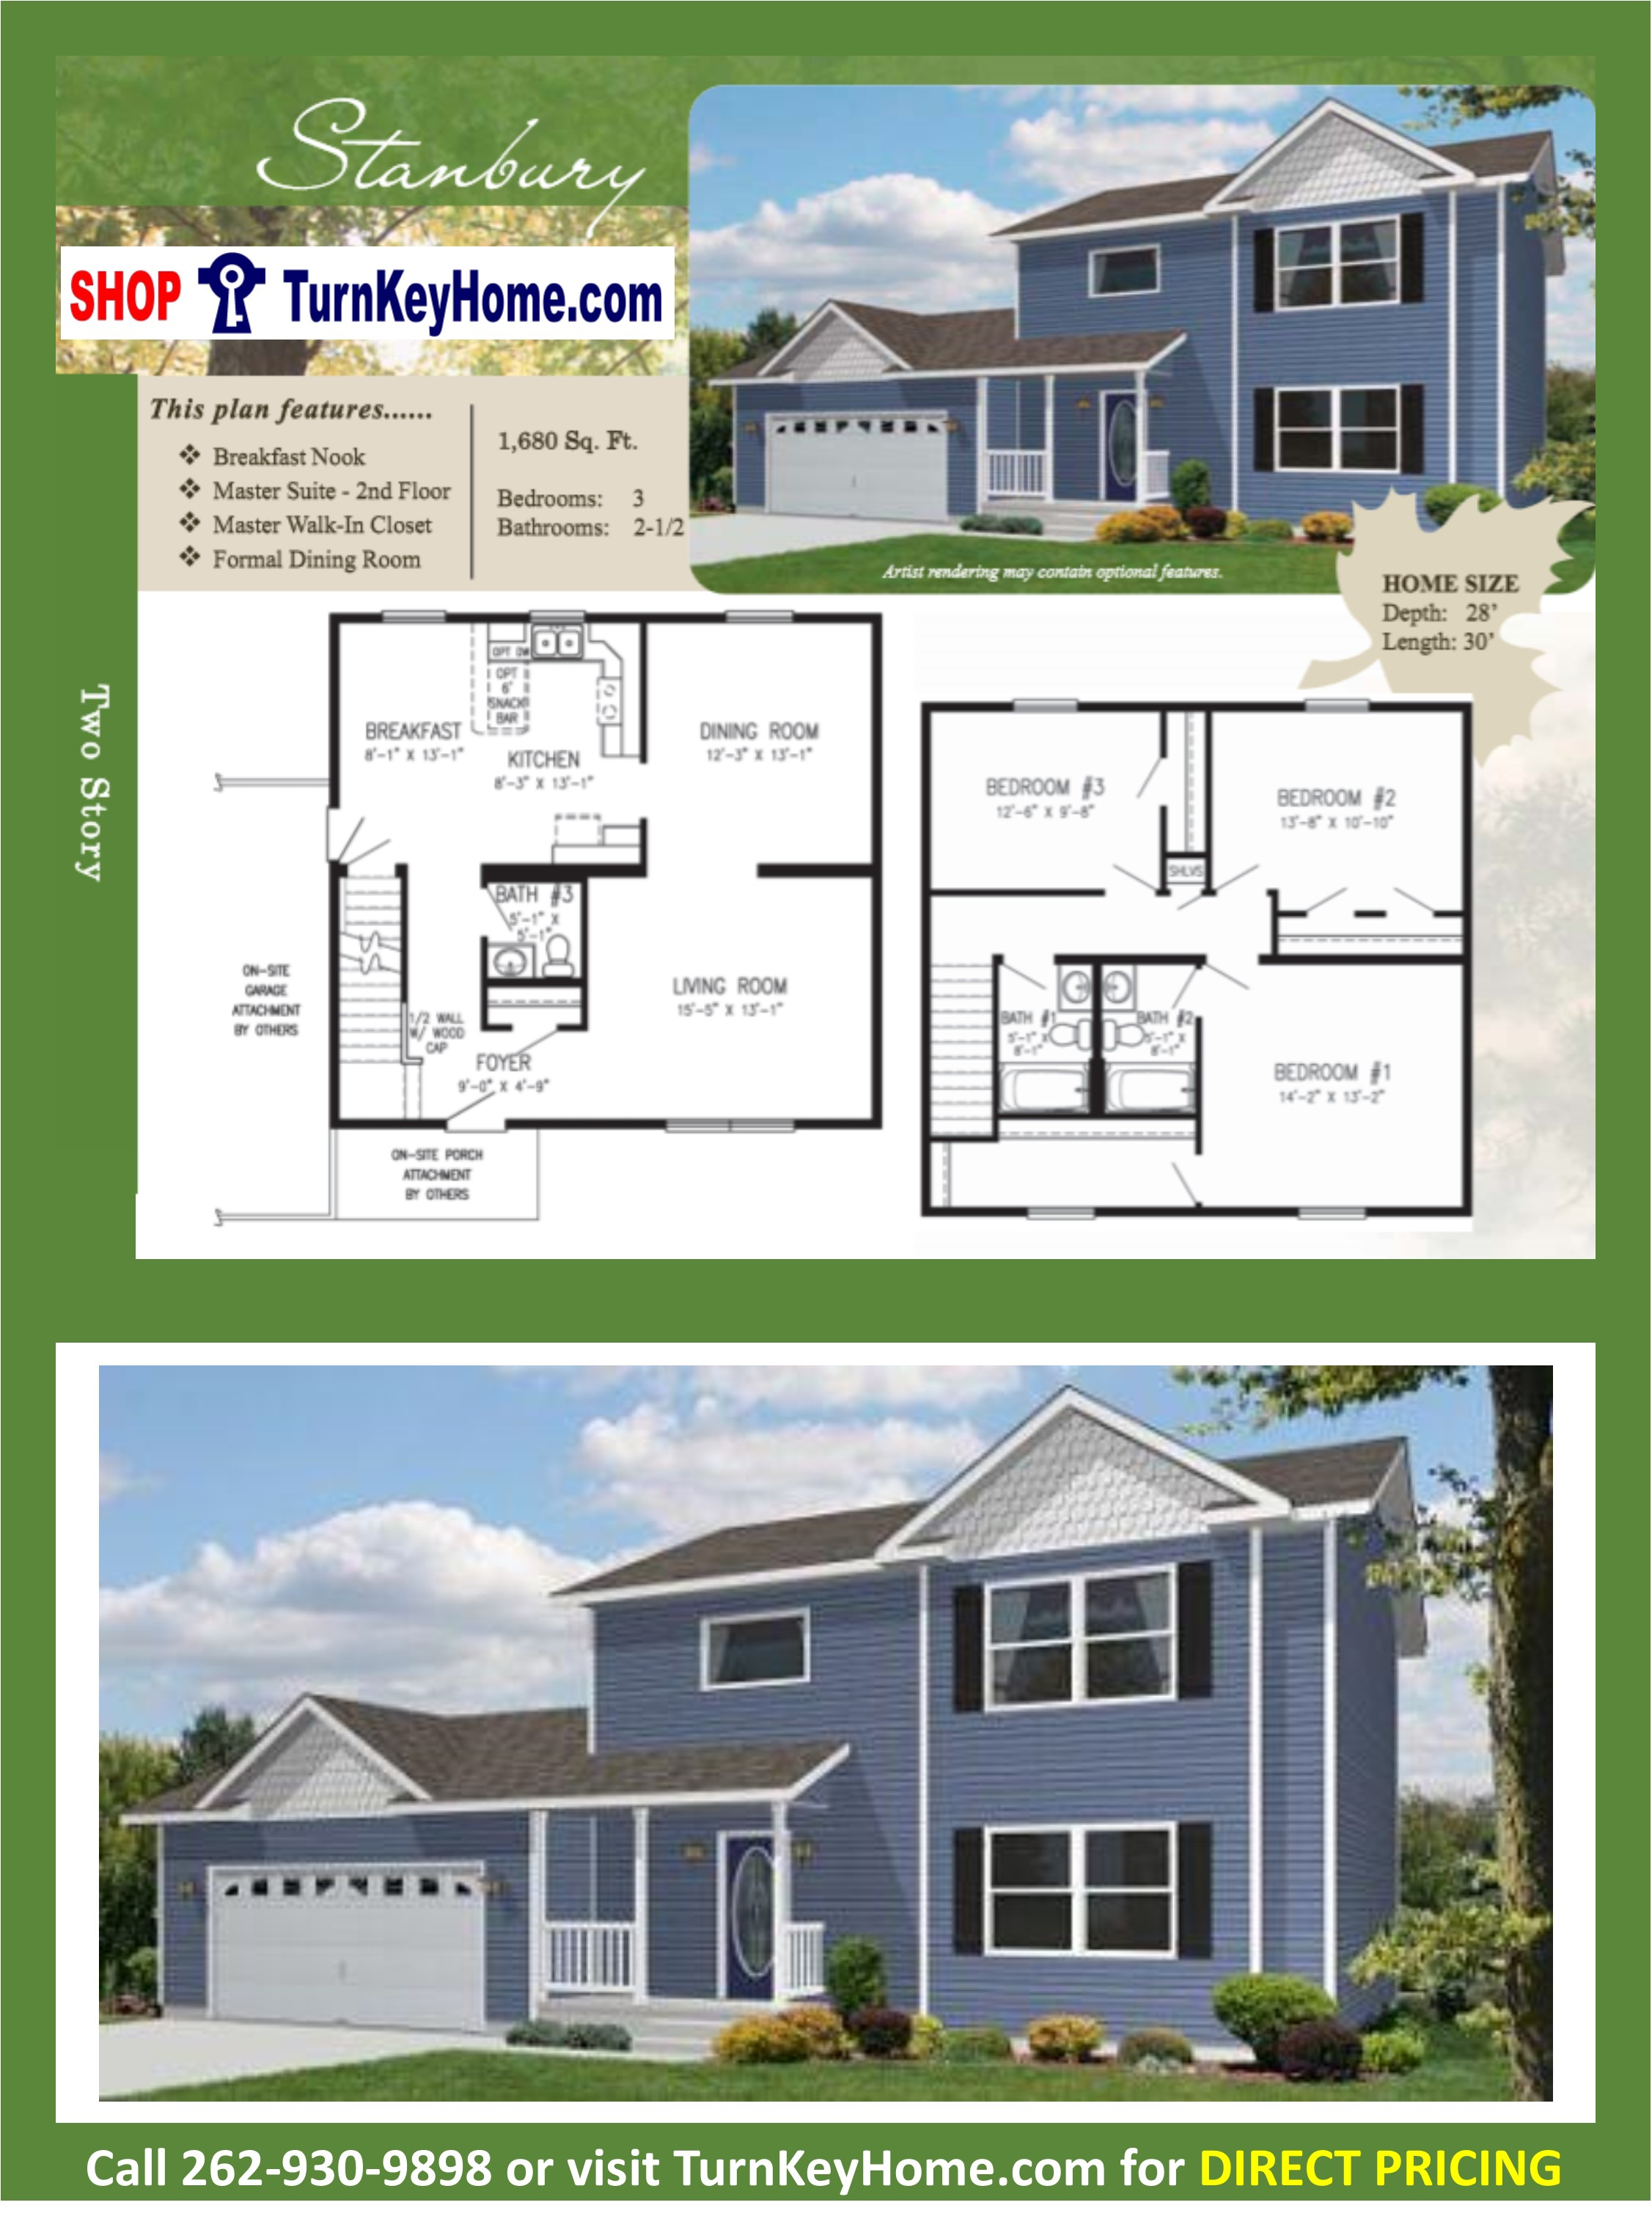 STANBURY Two Story Home 3 Bed 2.5 Bath Plan 1680 SF Priced From ...